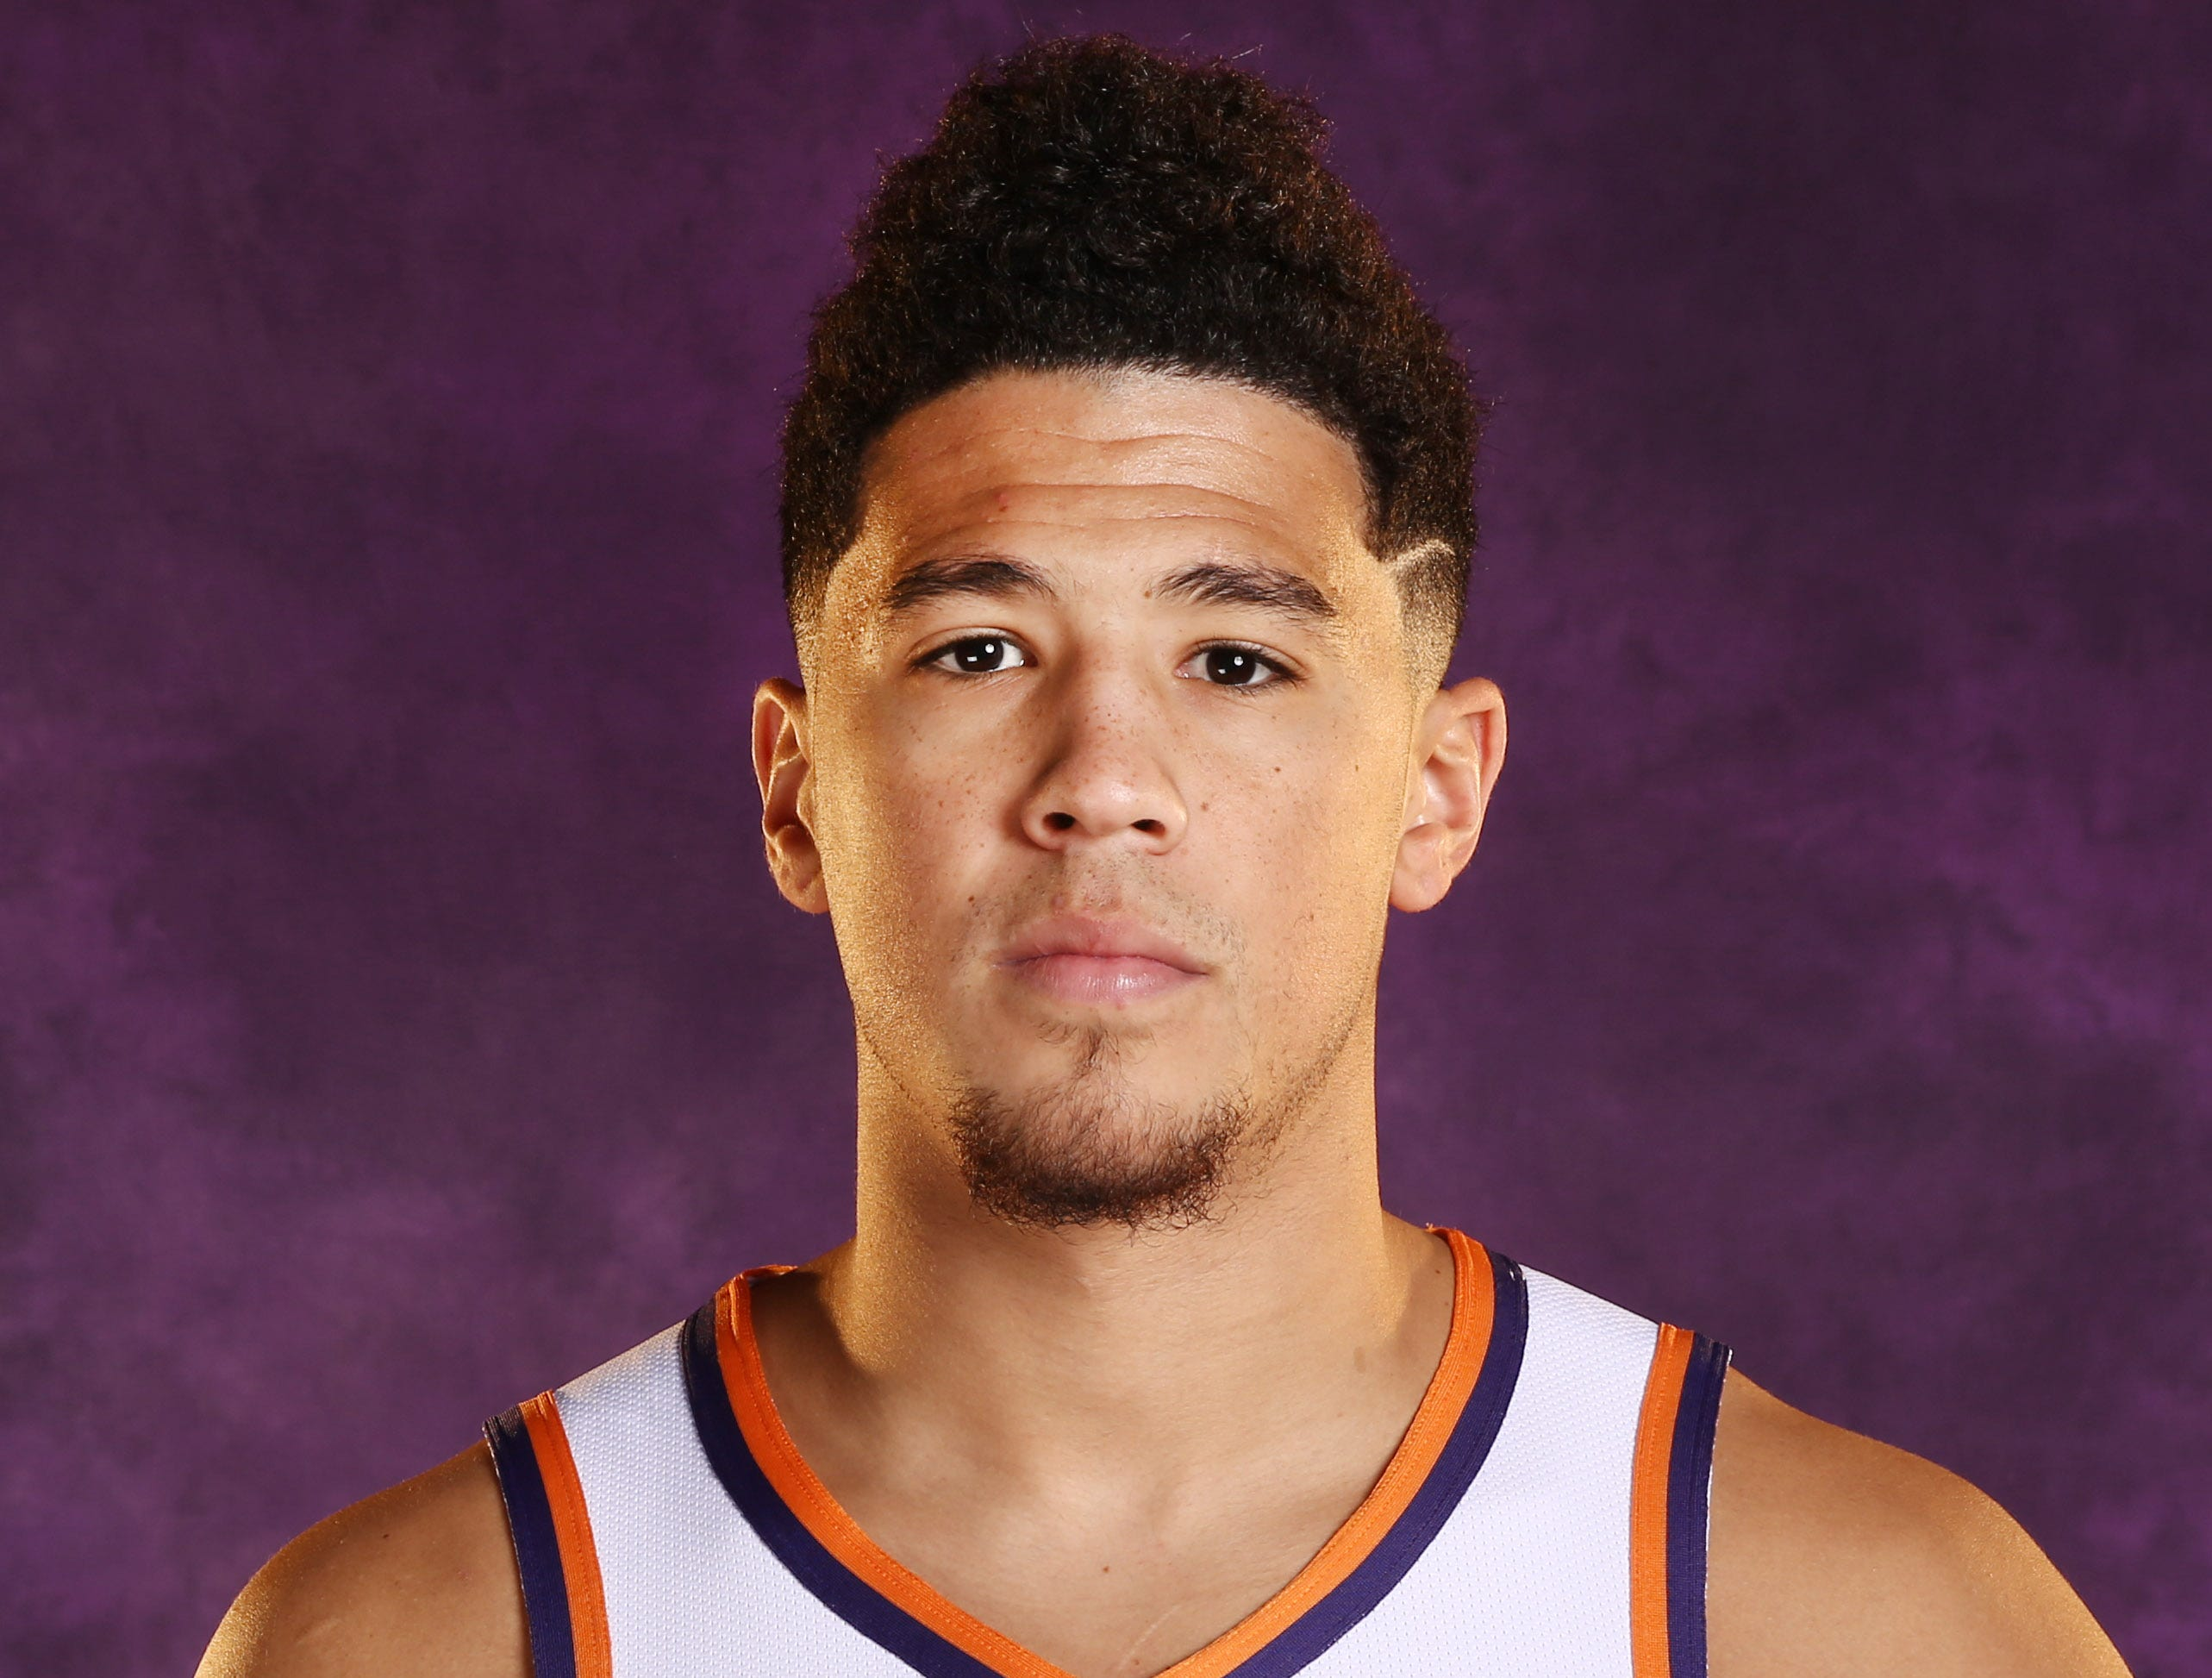 Devin Booker || Position: Guard || Height/Weight: 6-6, 210